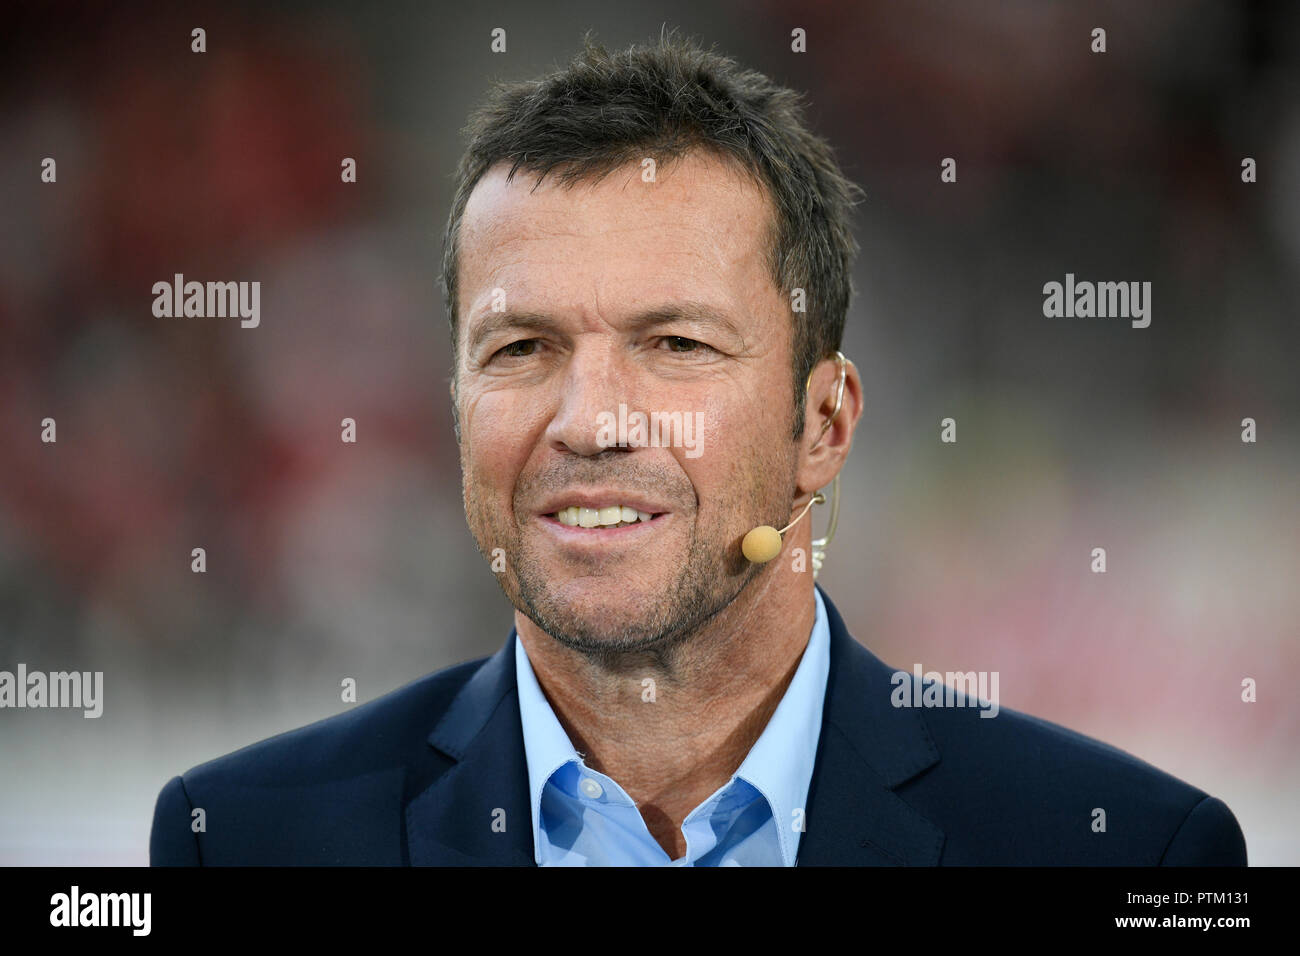 Football expert Lothar Matthäus, Mercedes-Benz Arena, Stuttgart, Baden-Württemberg, Germany Stock Photo